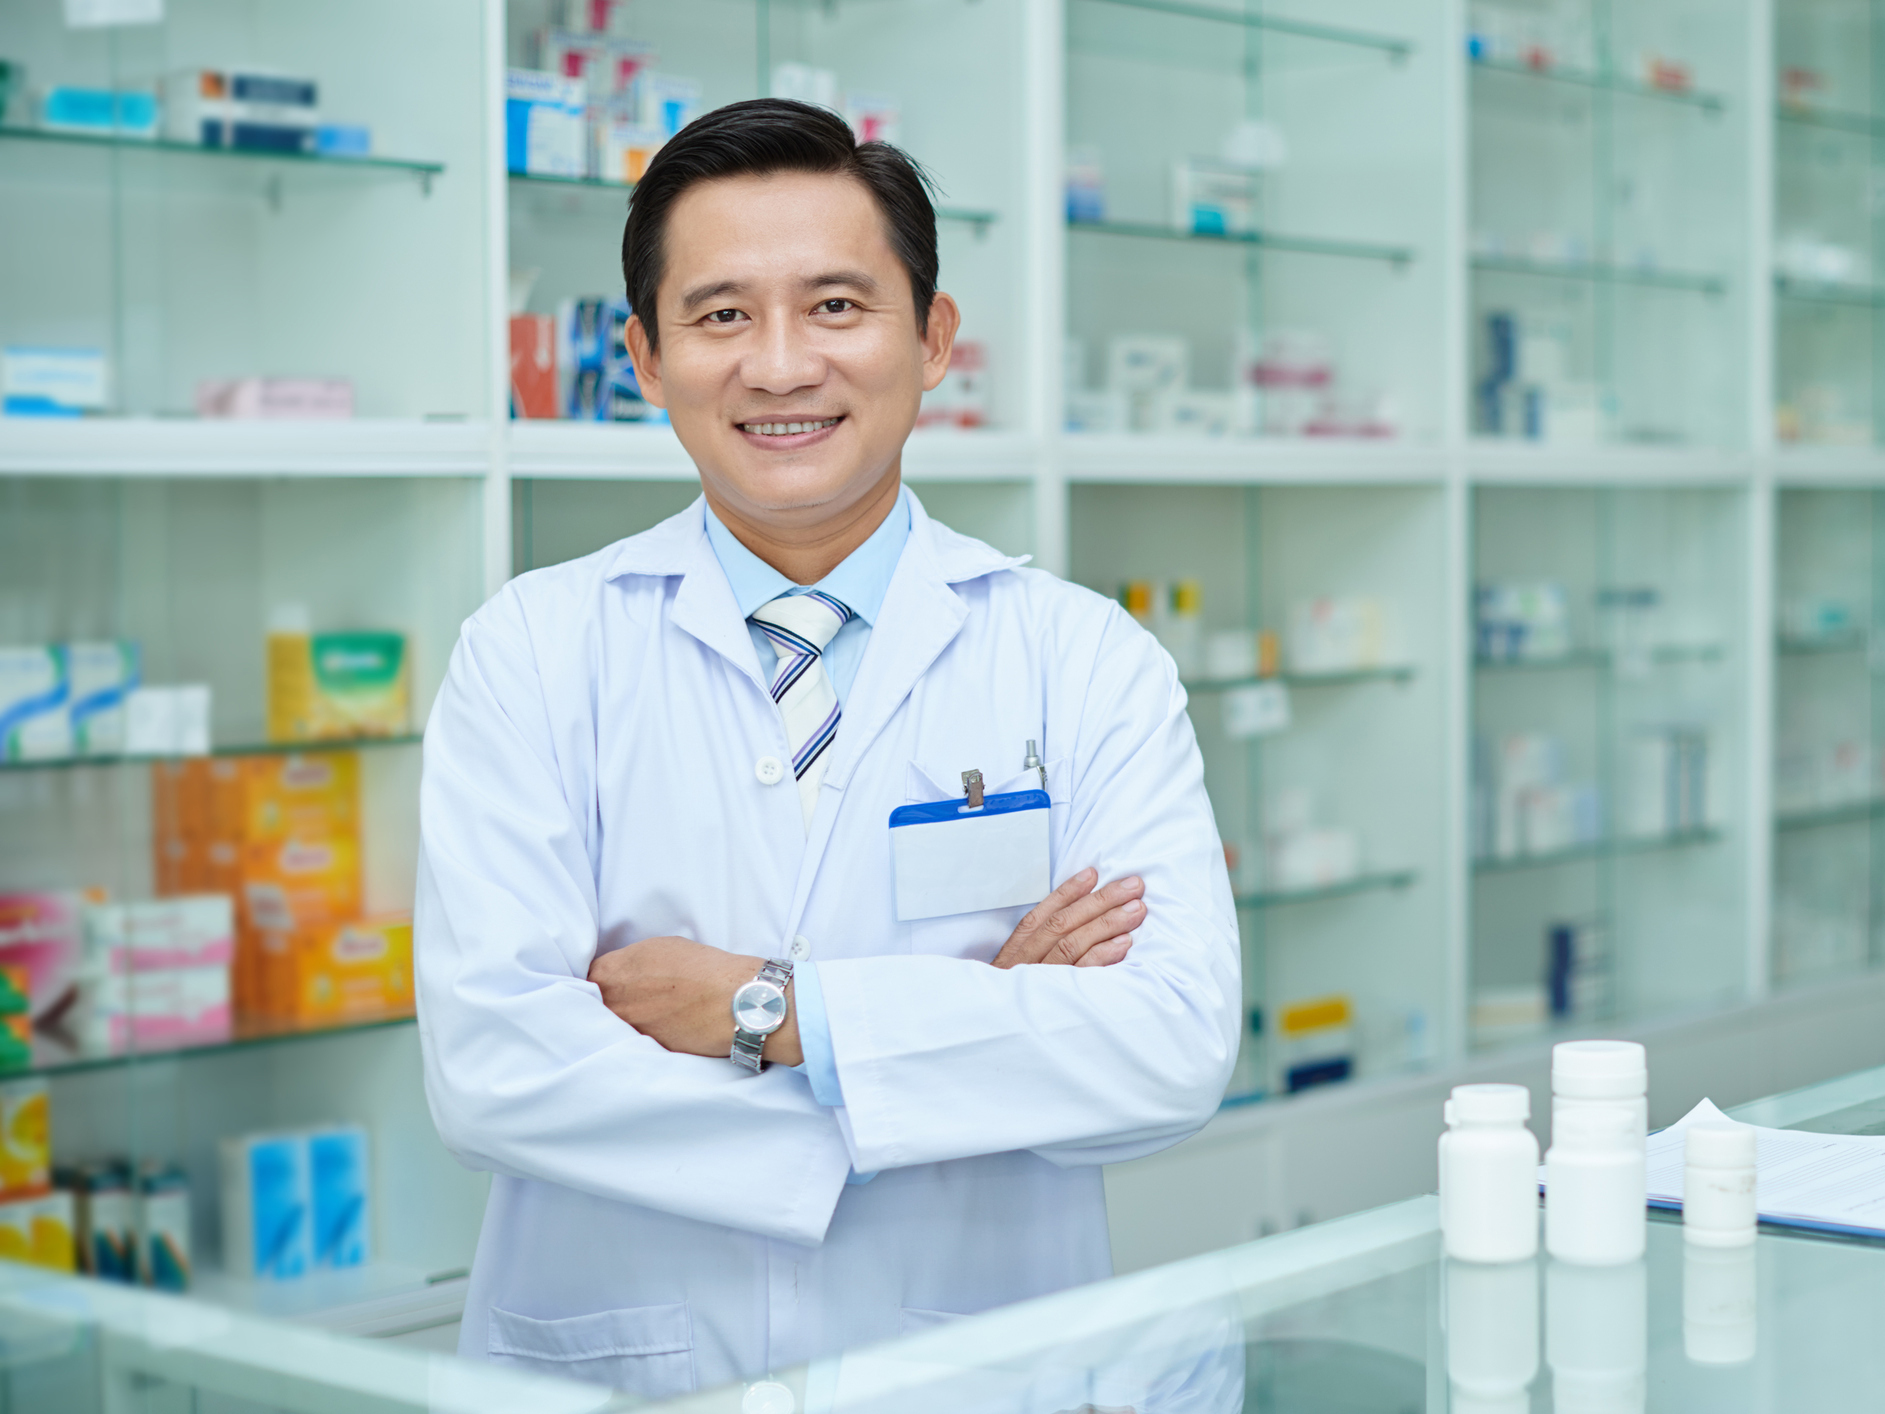 More than a dozen reasons to get to know your pharmacist better